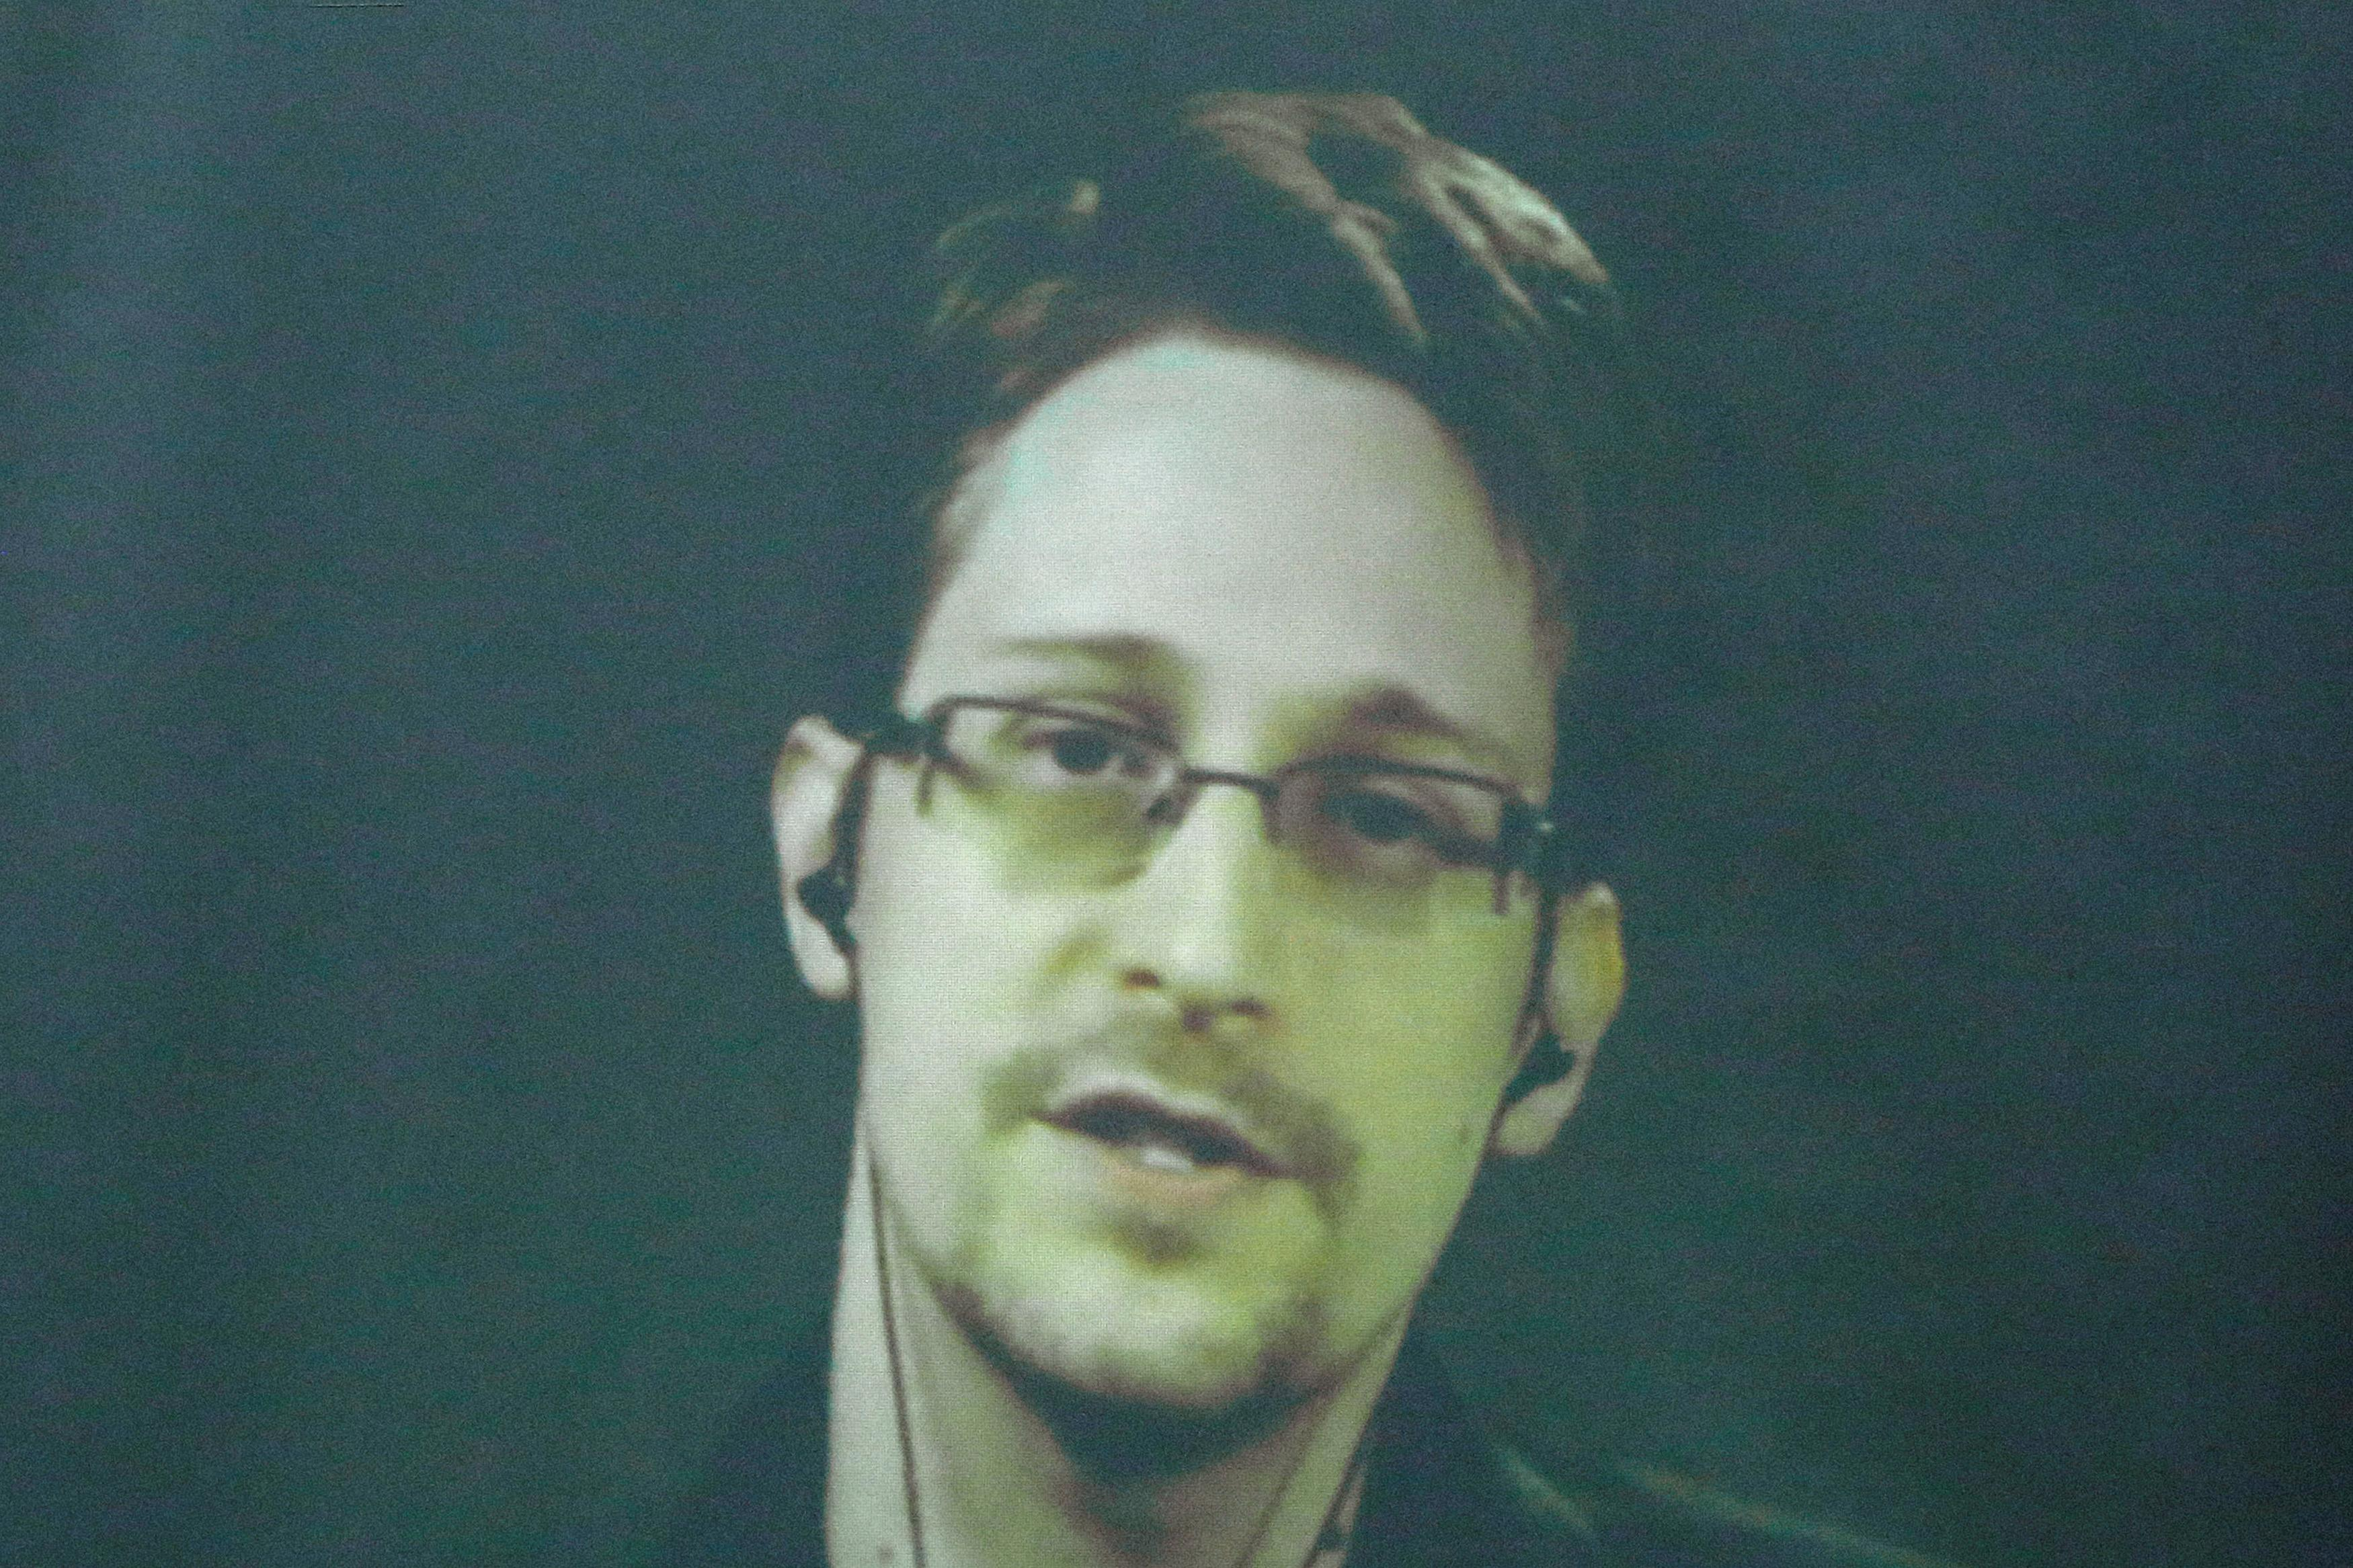 edward snowden dating or single